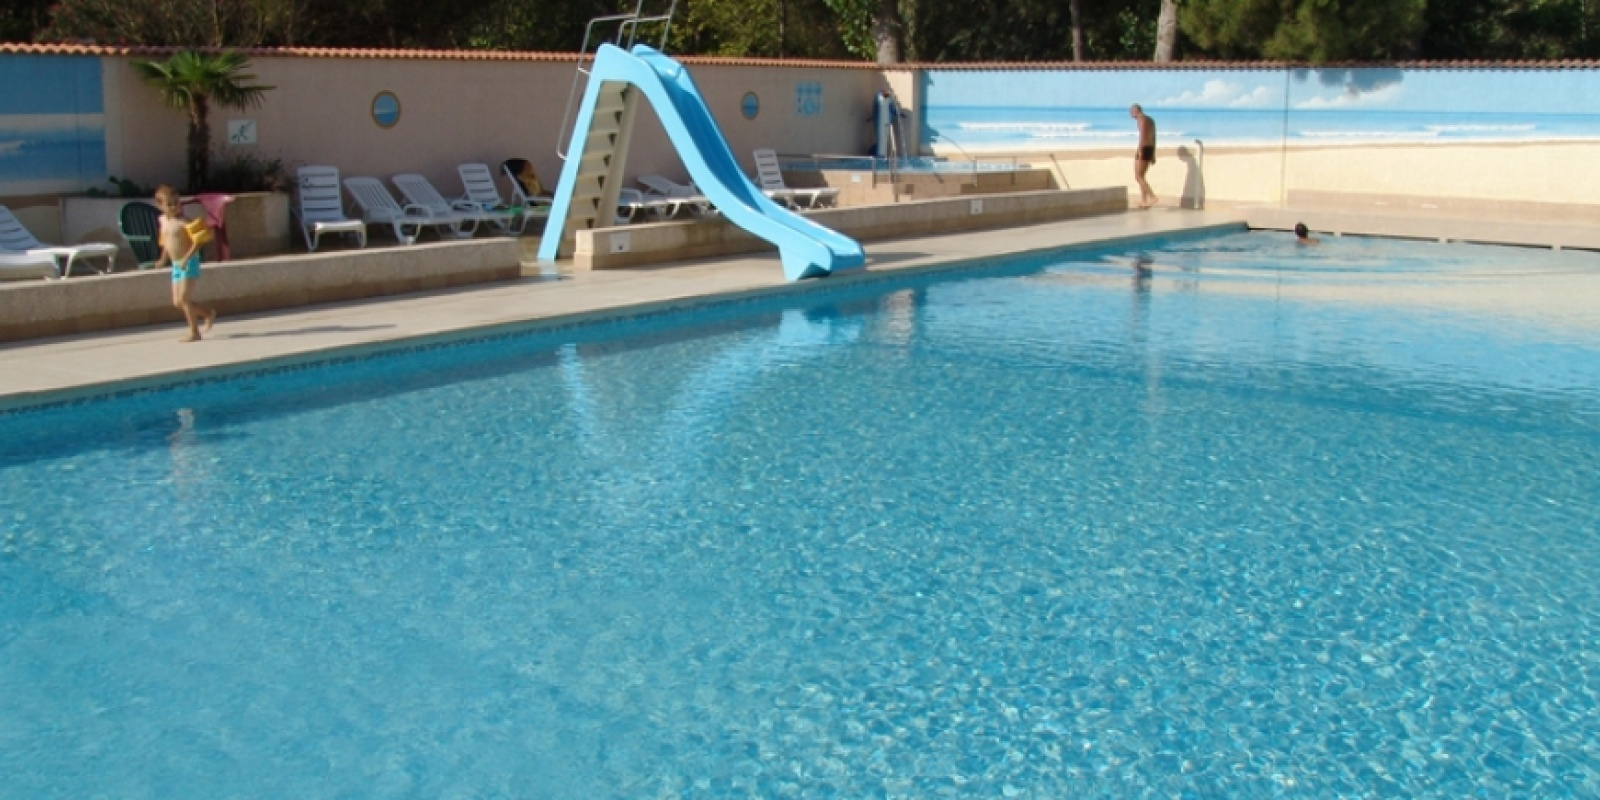 Camping en picardie avec piscine camping 4 etoiles for Camping calvados avec piscine